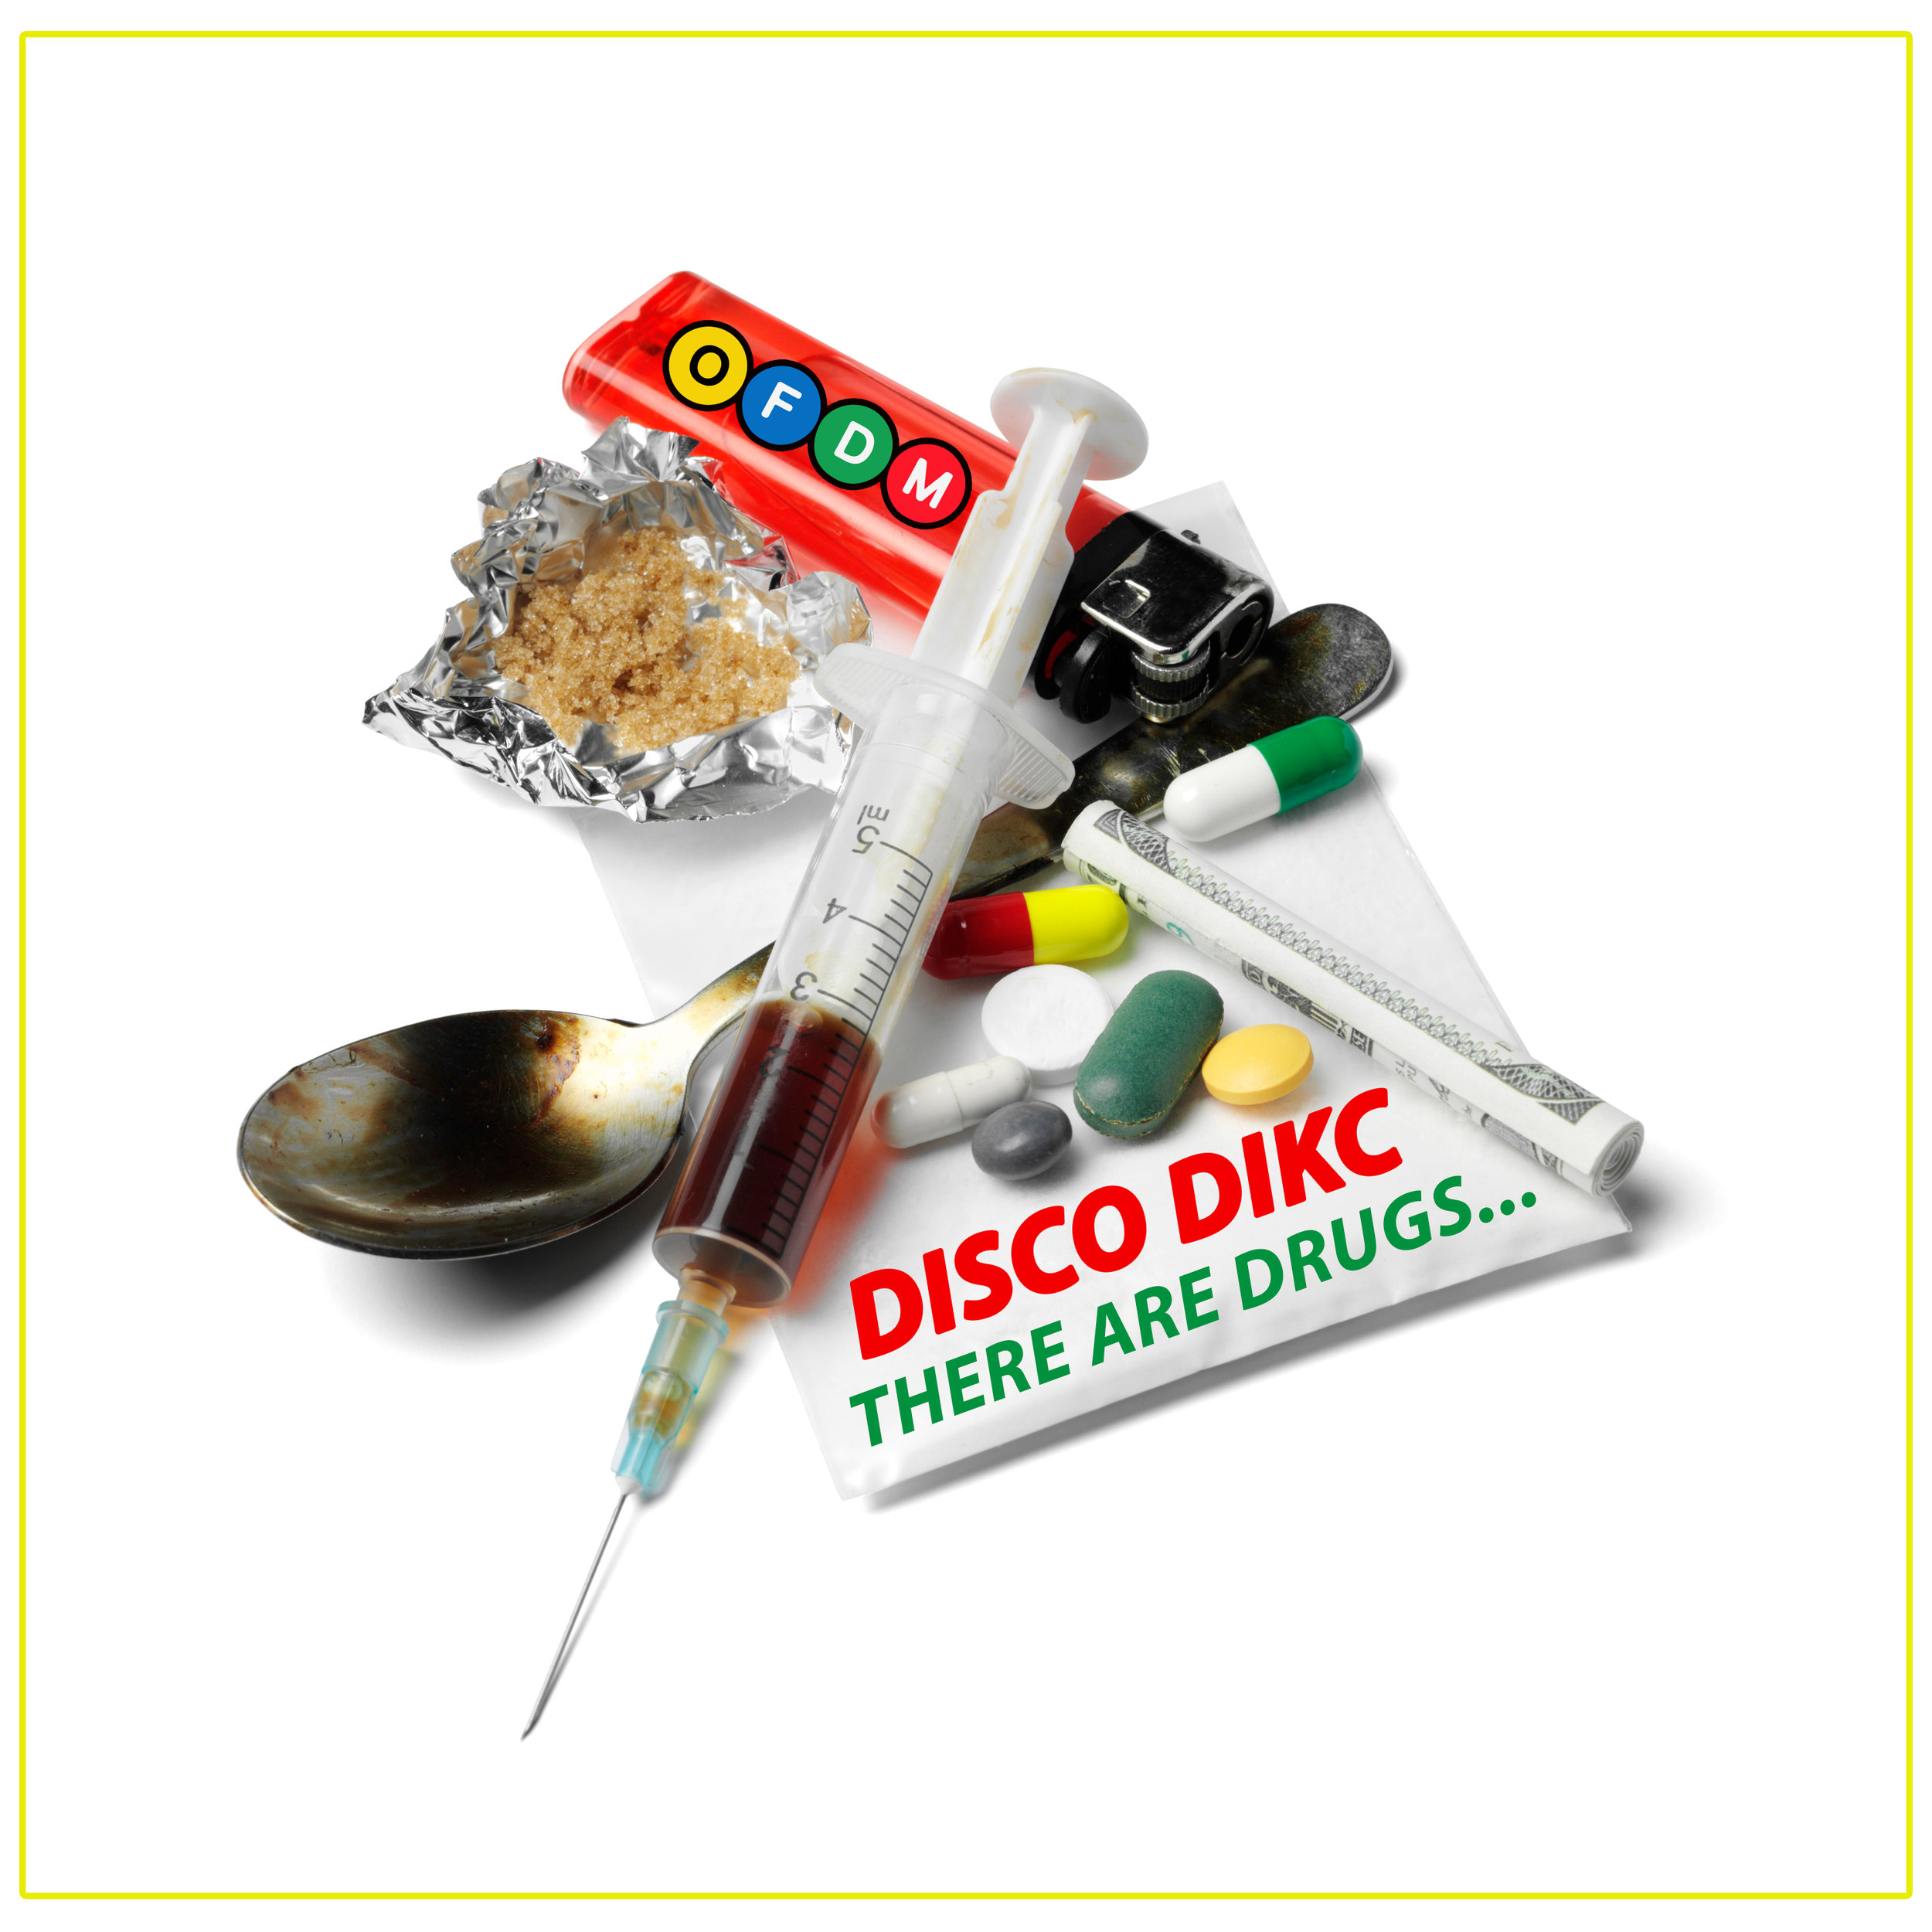 [OFDM023] DISCO DIKC - There Are Drugs.jpg